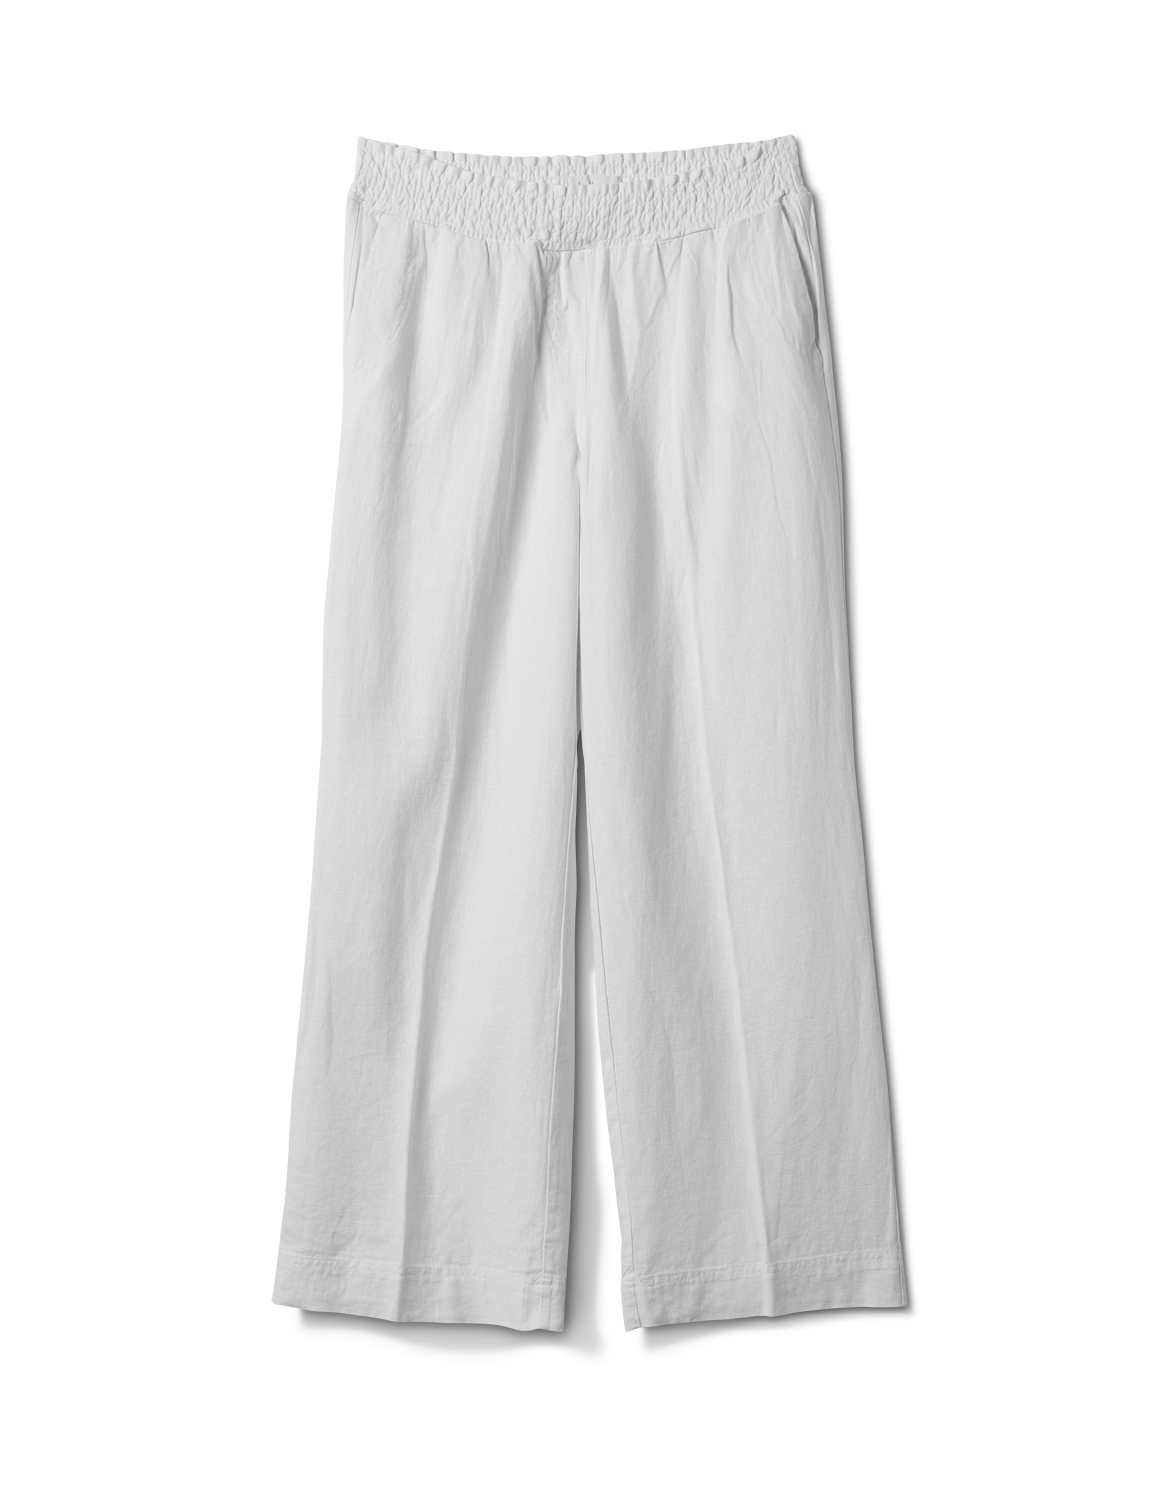 Smocked Waist Pull On Pant With Pockets -White - Front